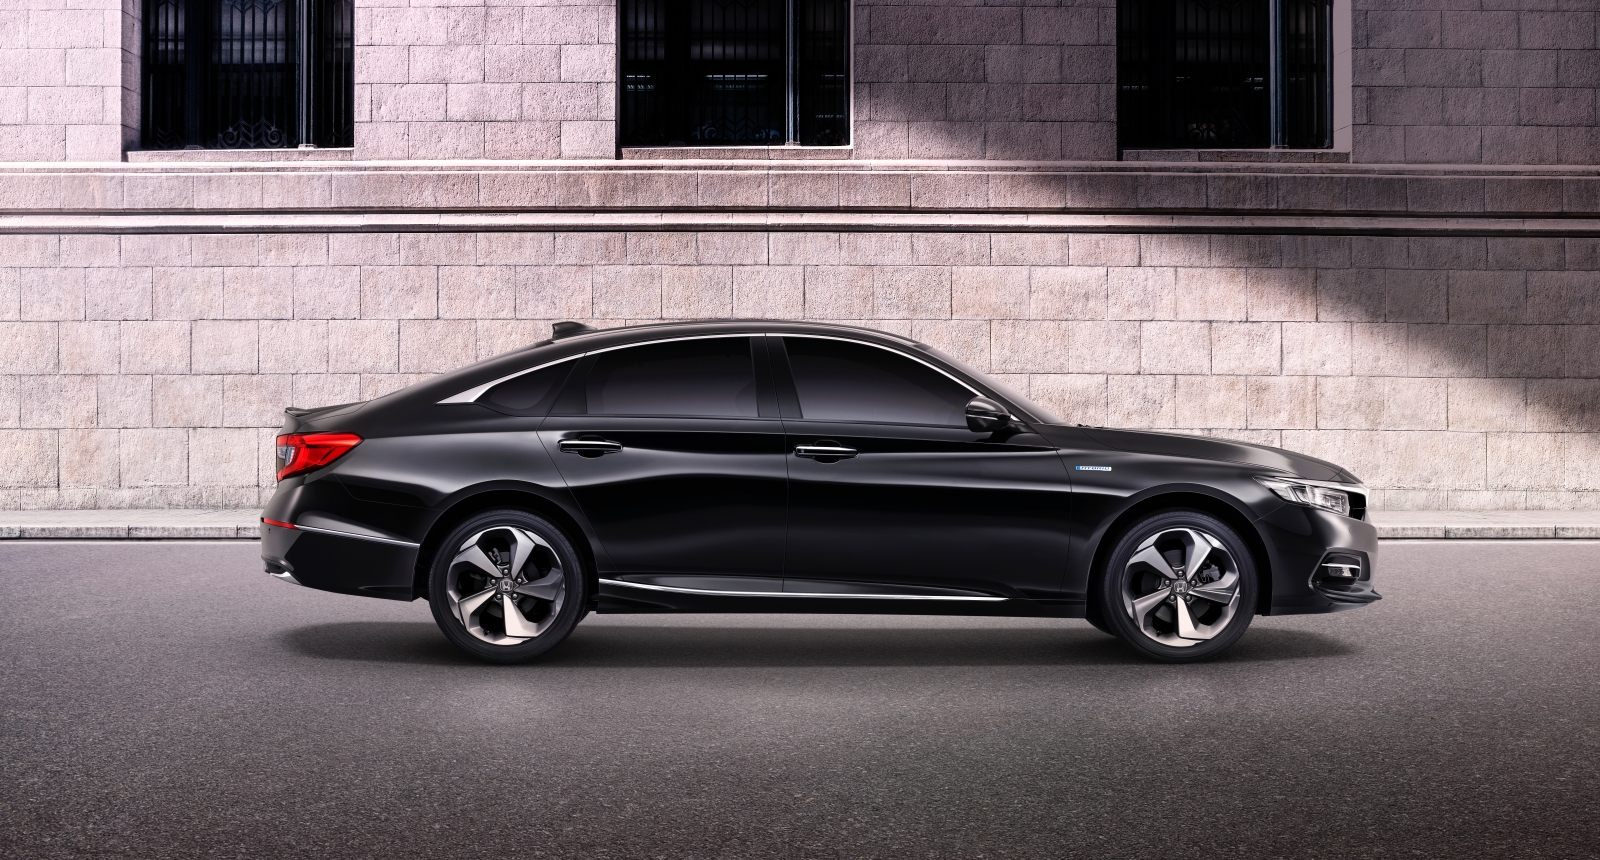 THE ACCORD ALL NEW HORIZON BEGINS